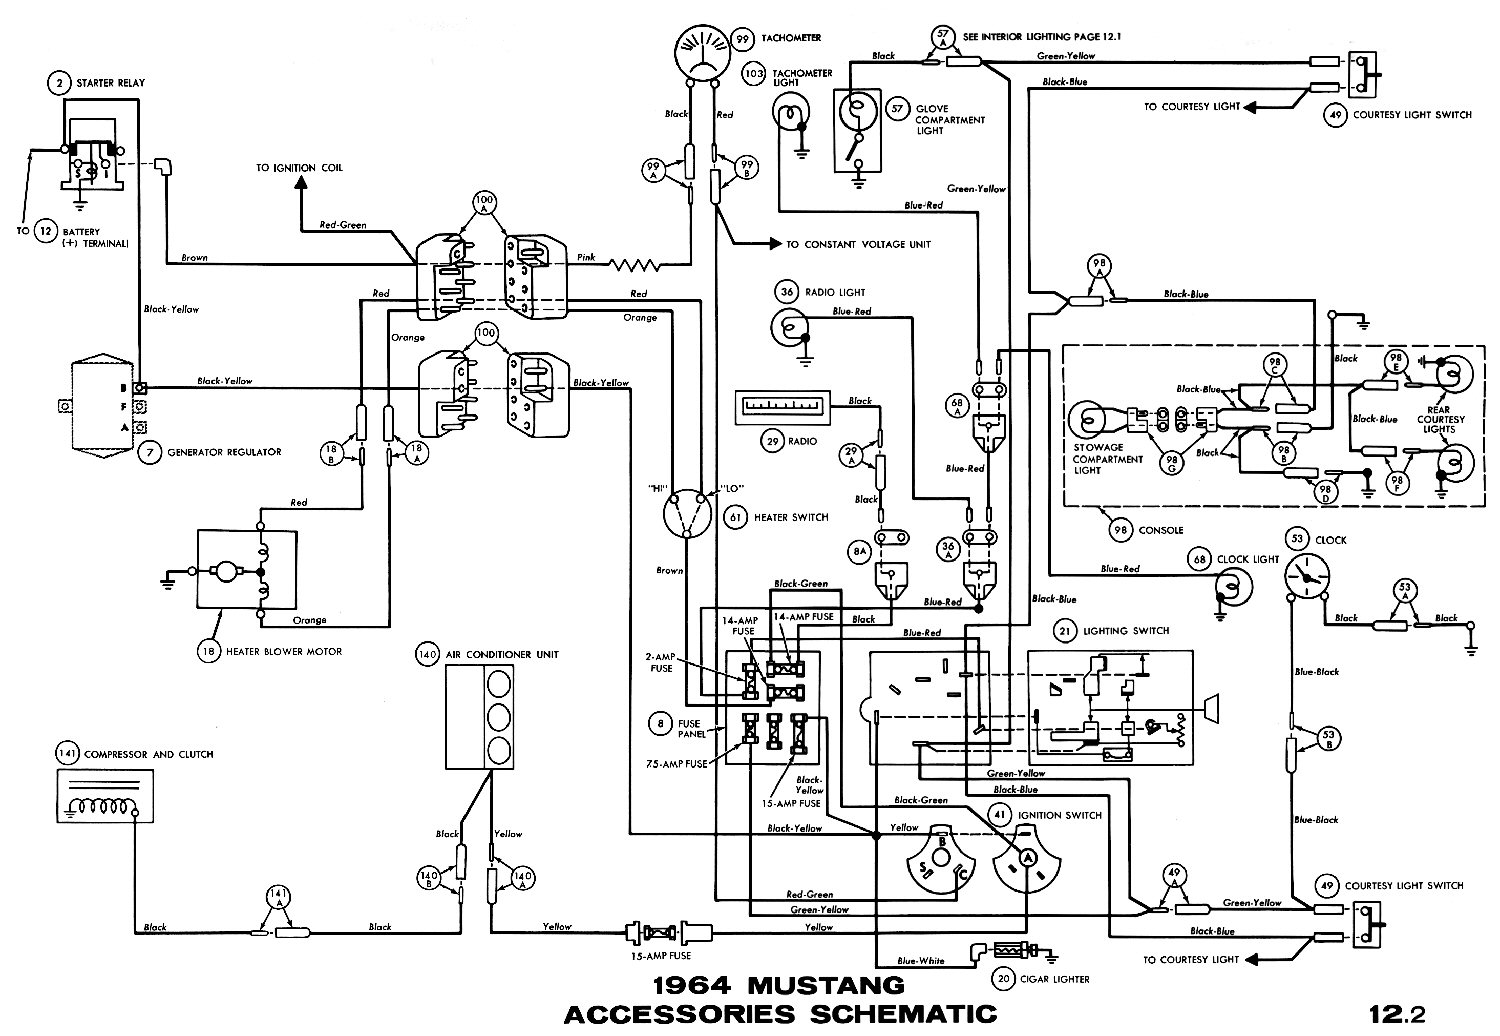 1969 mustang wiring diagram online 1976 ford mustang wiring diagram e1 wiring diagram  1976 ford mustang wiring diagram e1